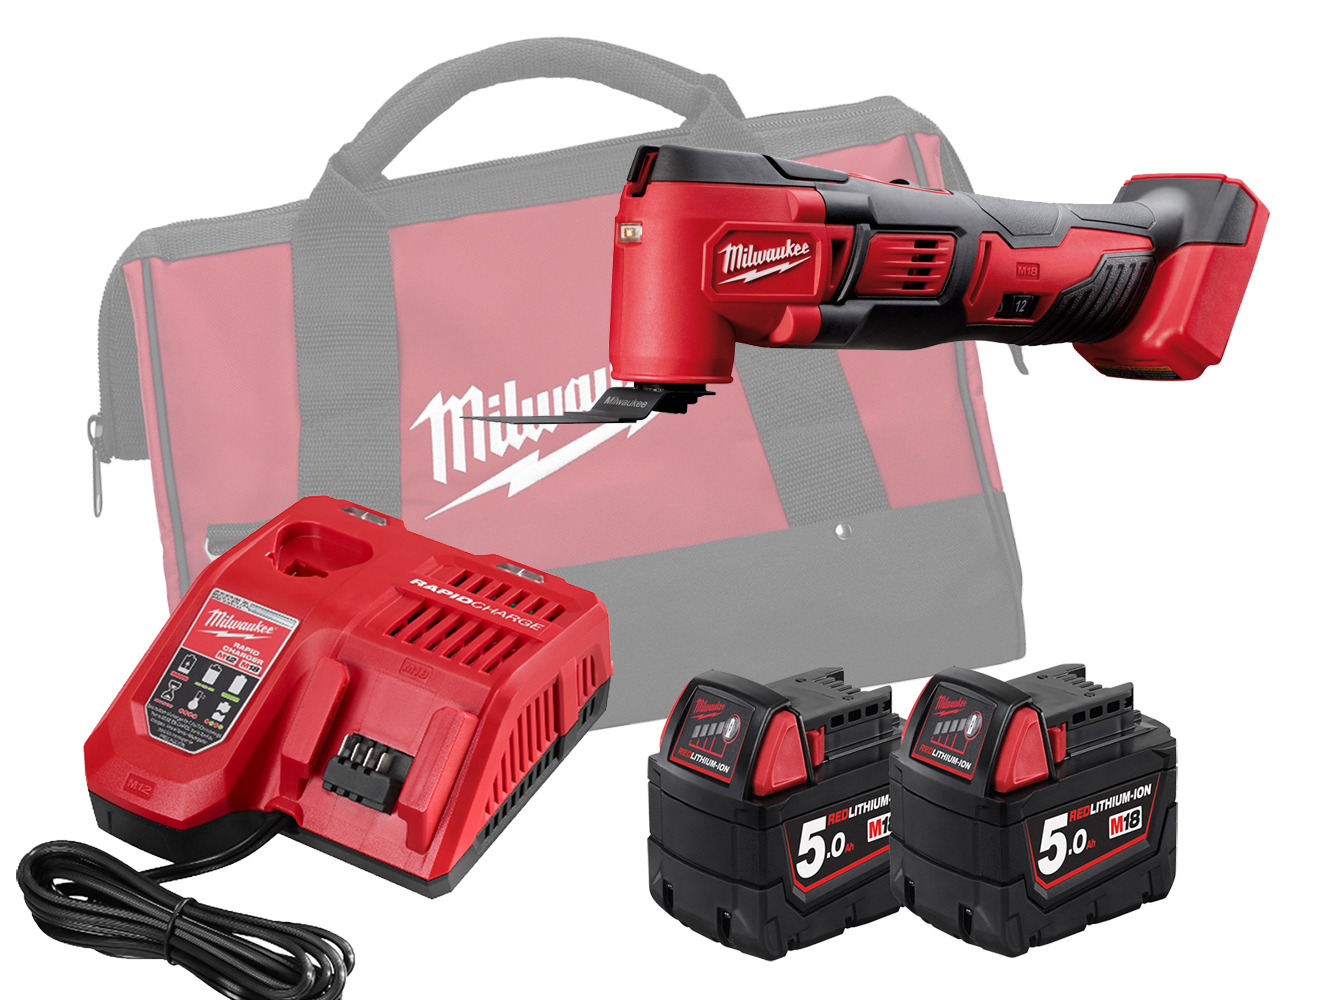 MILWAUKEE 18V BRUSHED QUICK-RELEASE MULTI TOOL - M18BMT - 5.0AH PACK